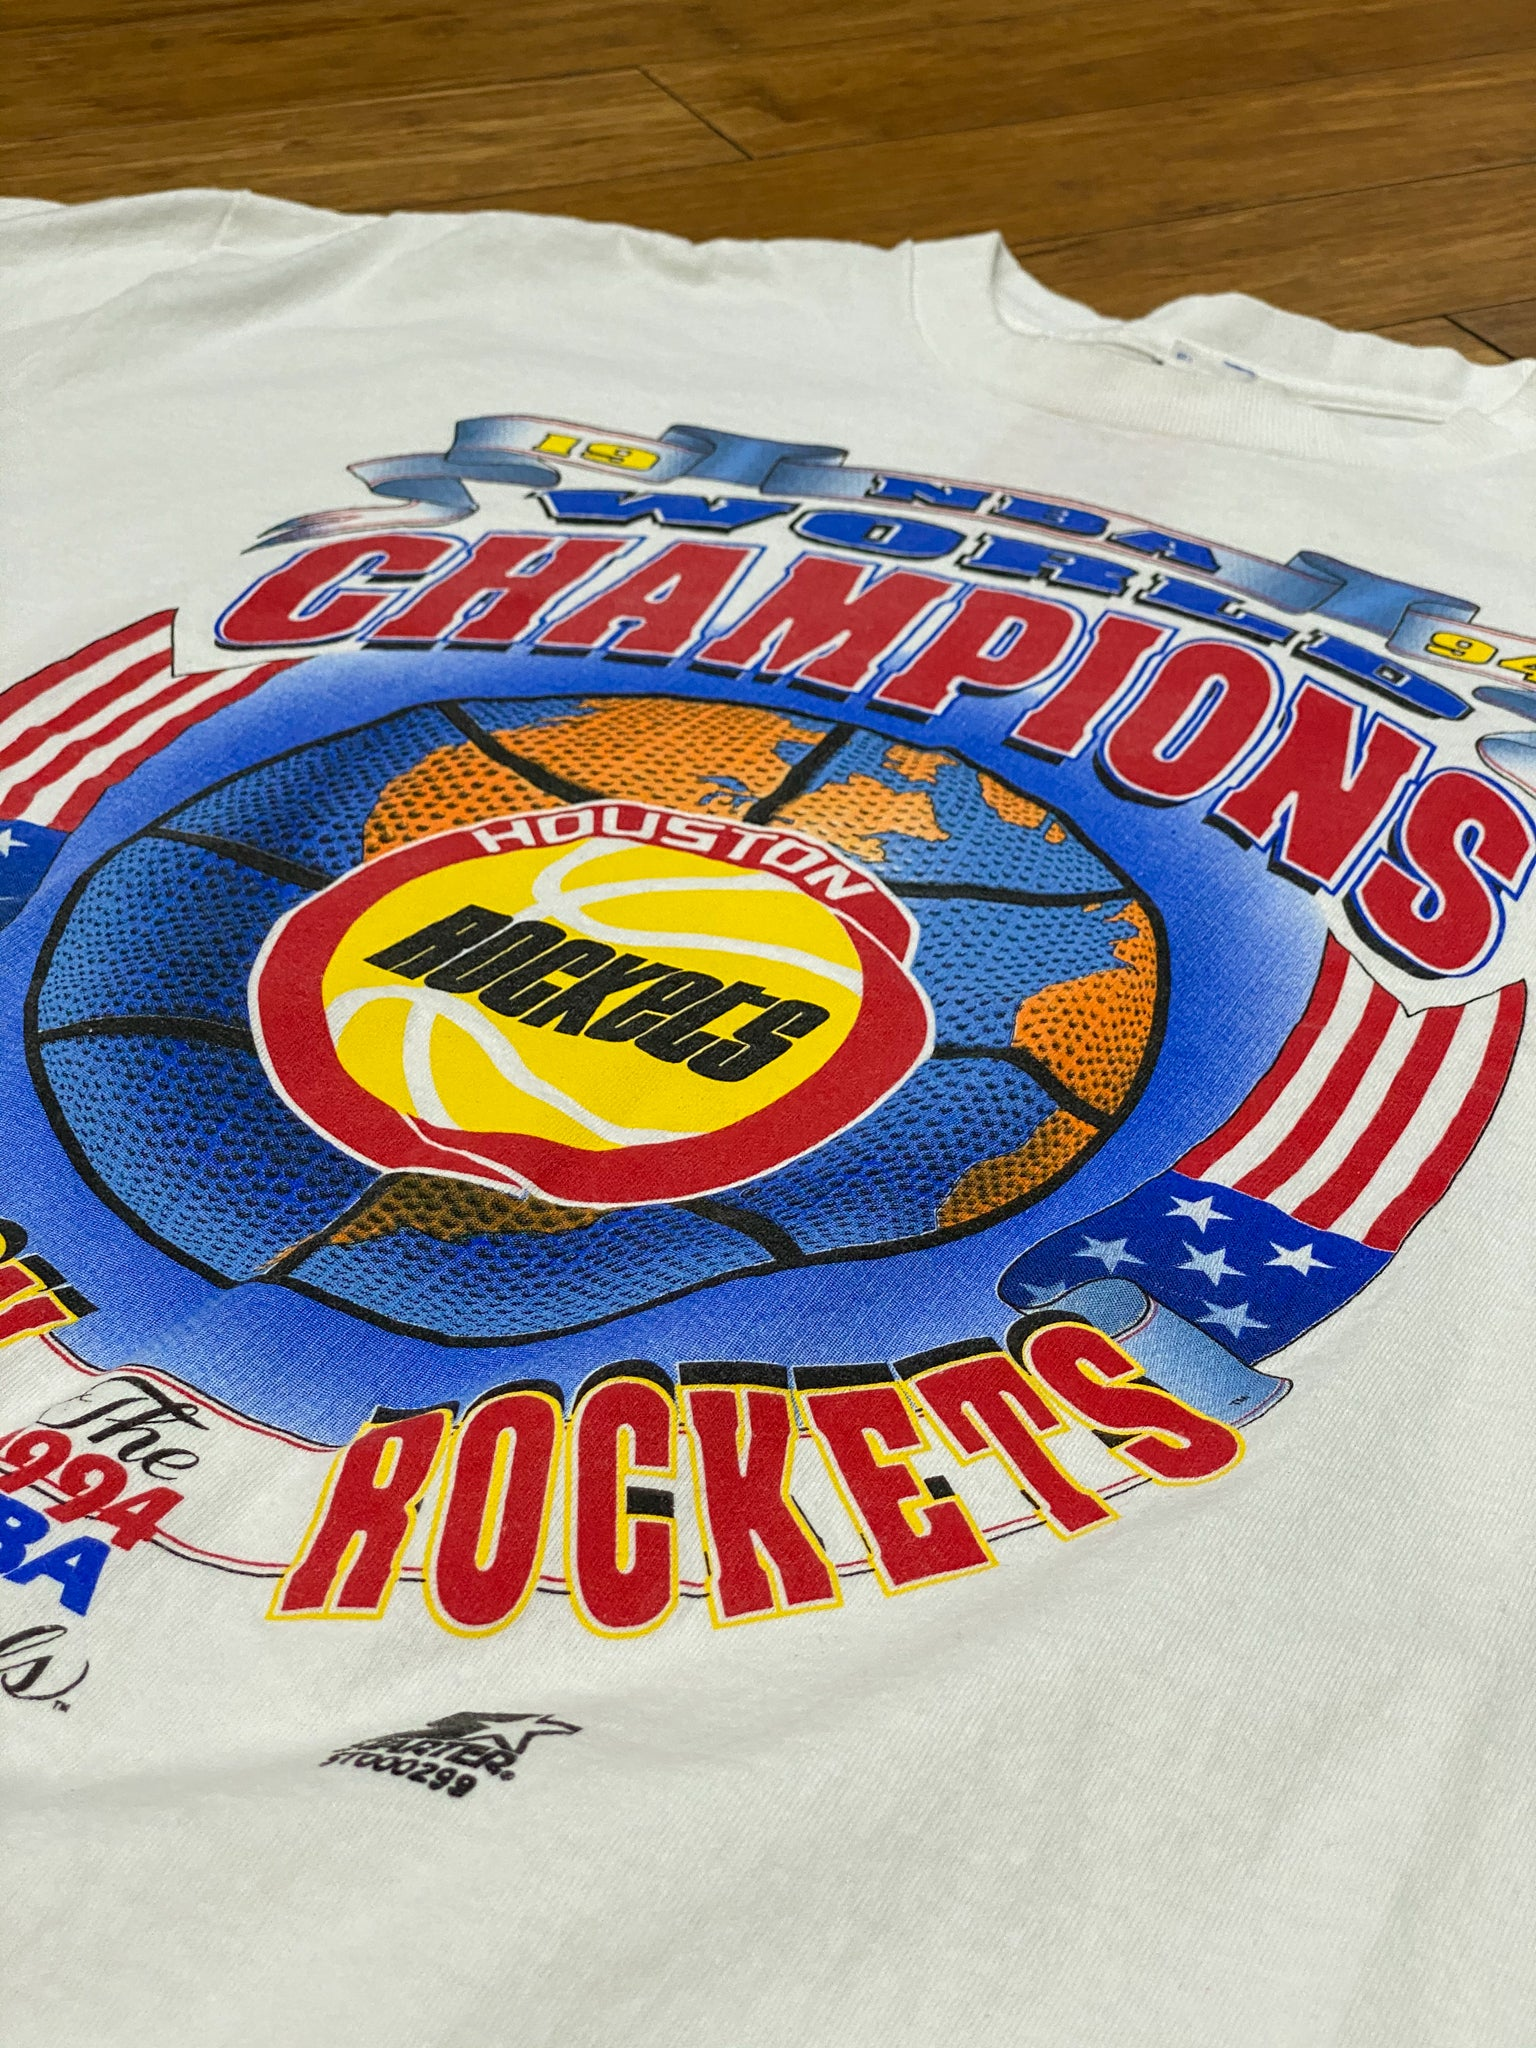 Starter world champs rockets tee blue/red